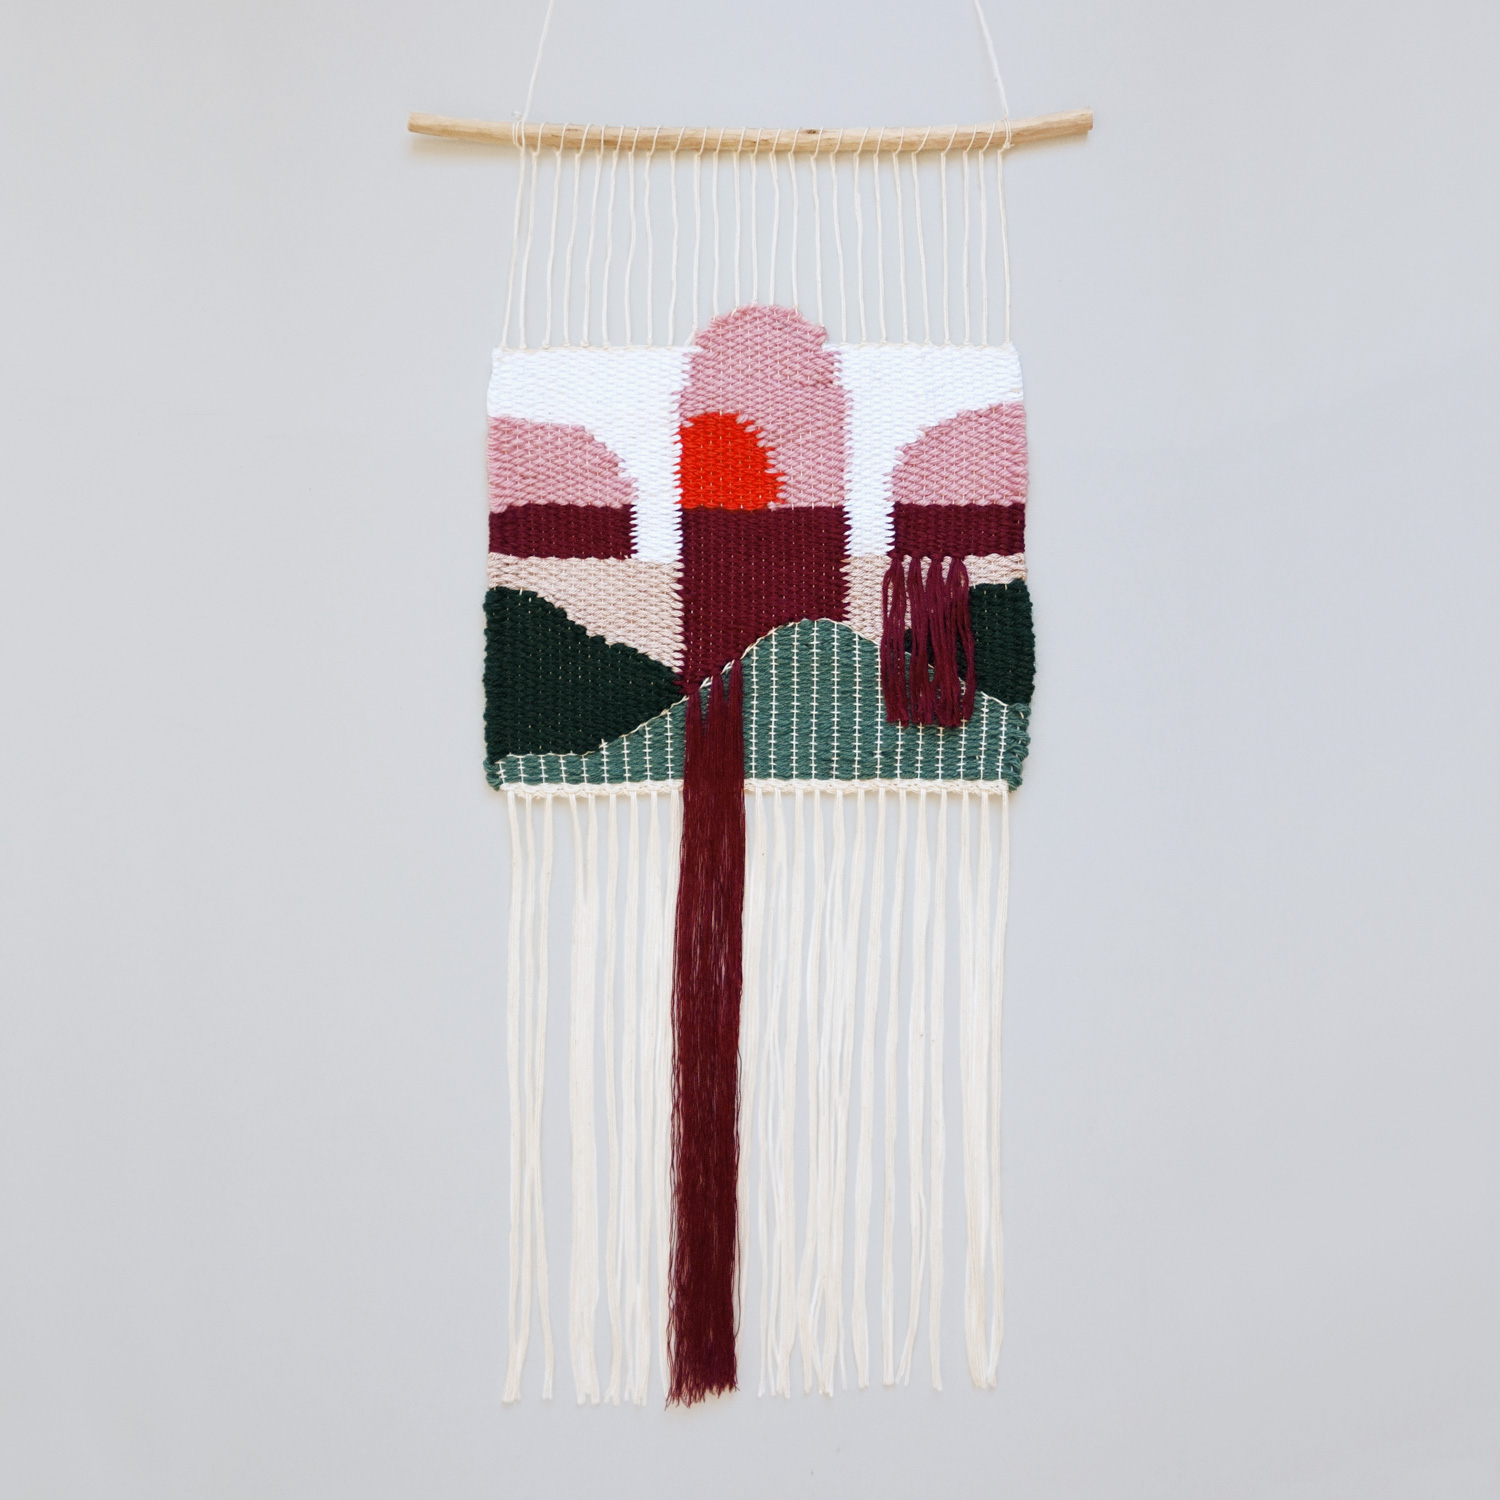 A woven mini wall hanging, featuring a serene scene with arches, waterfalls and a sunset.